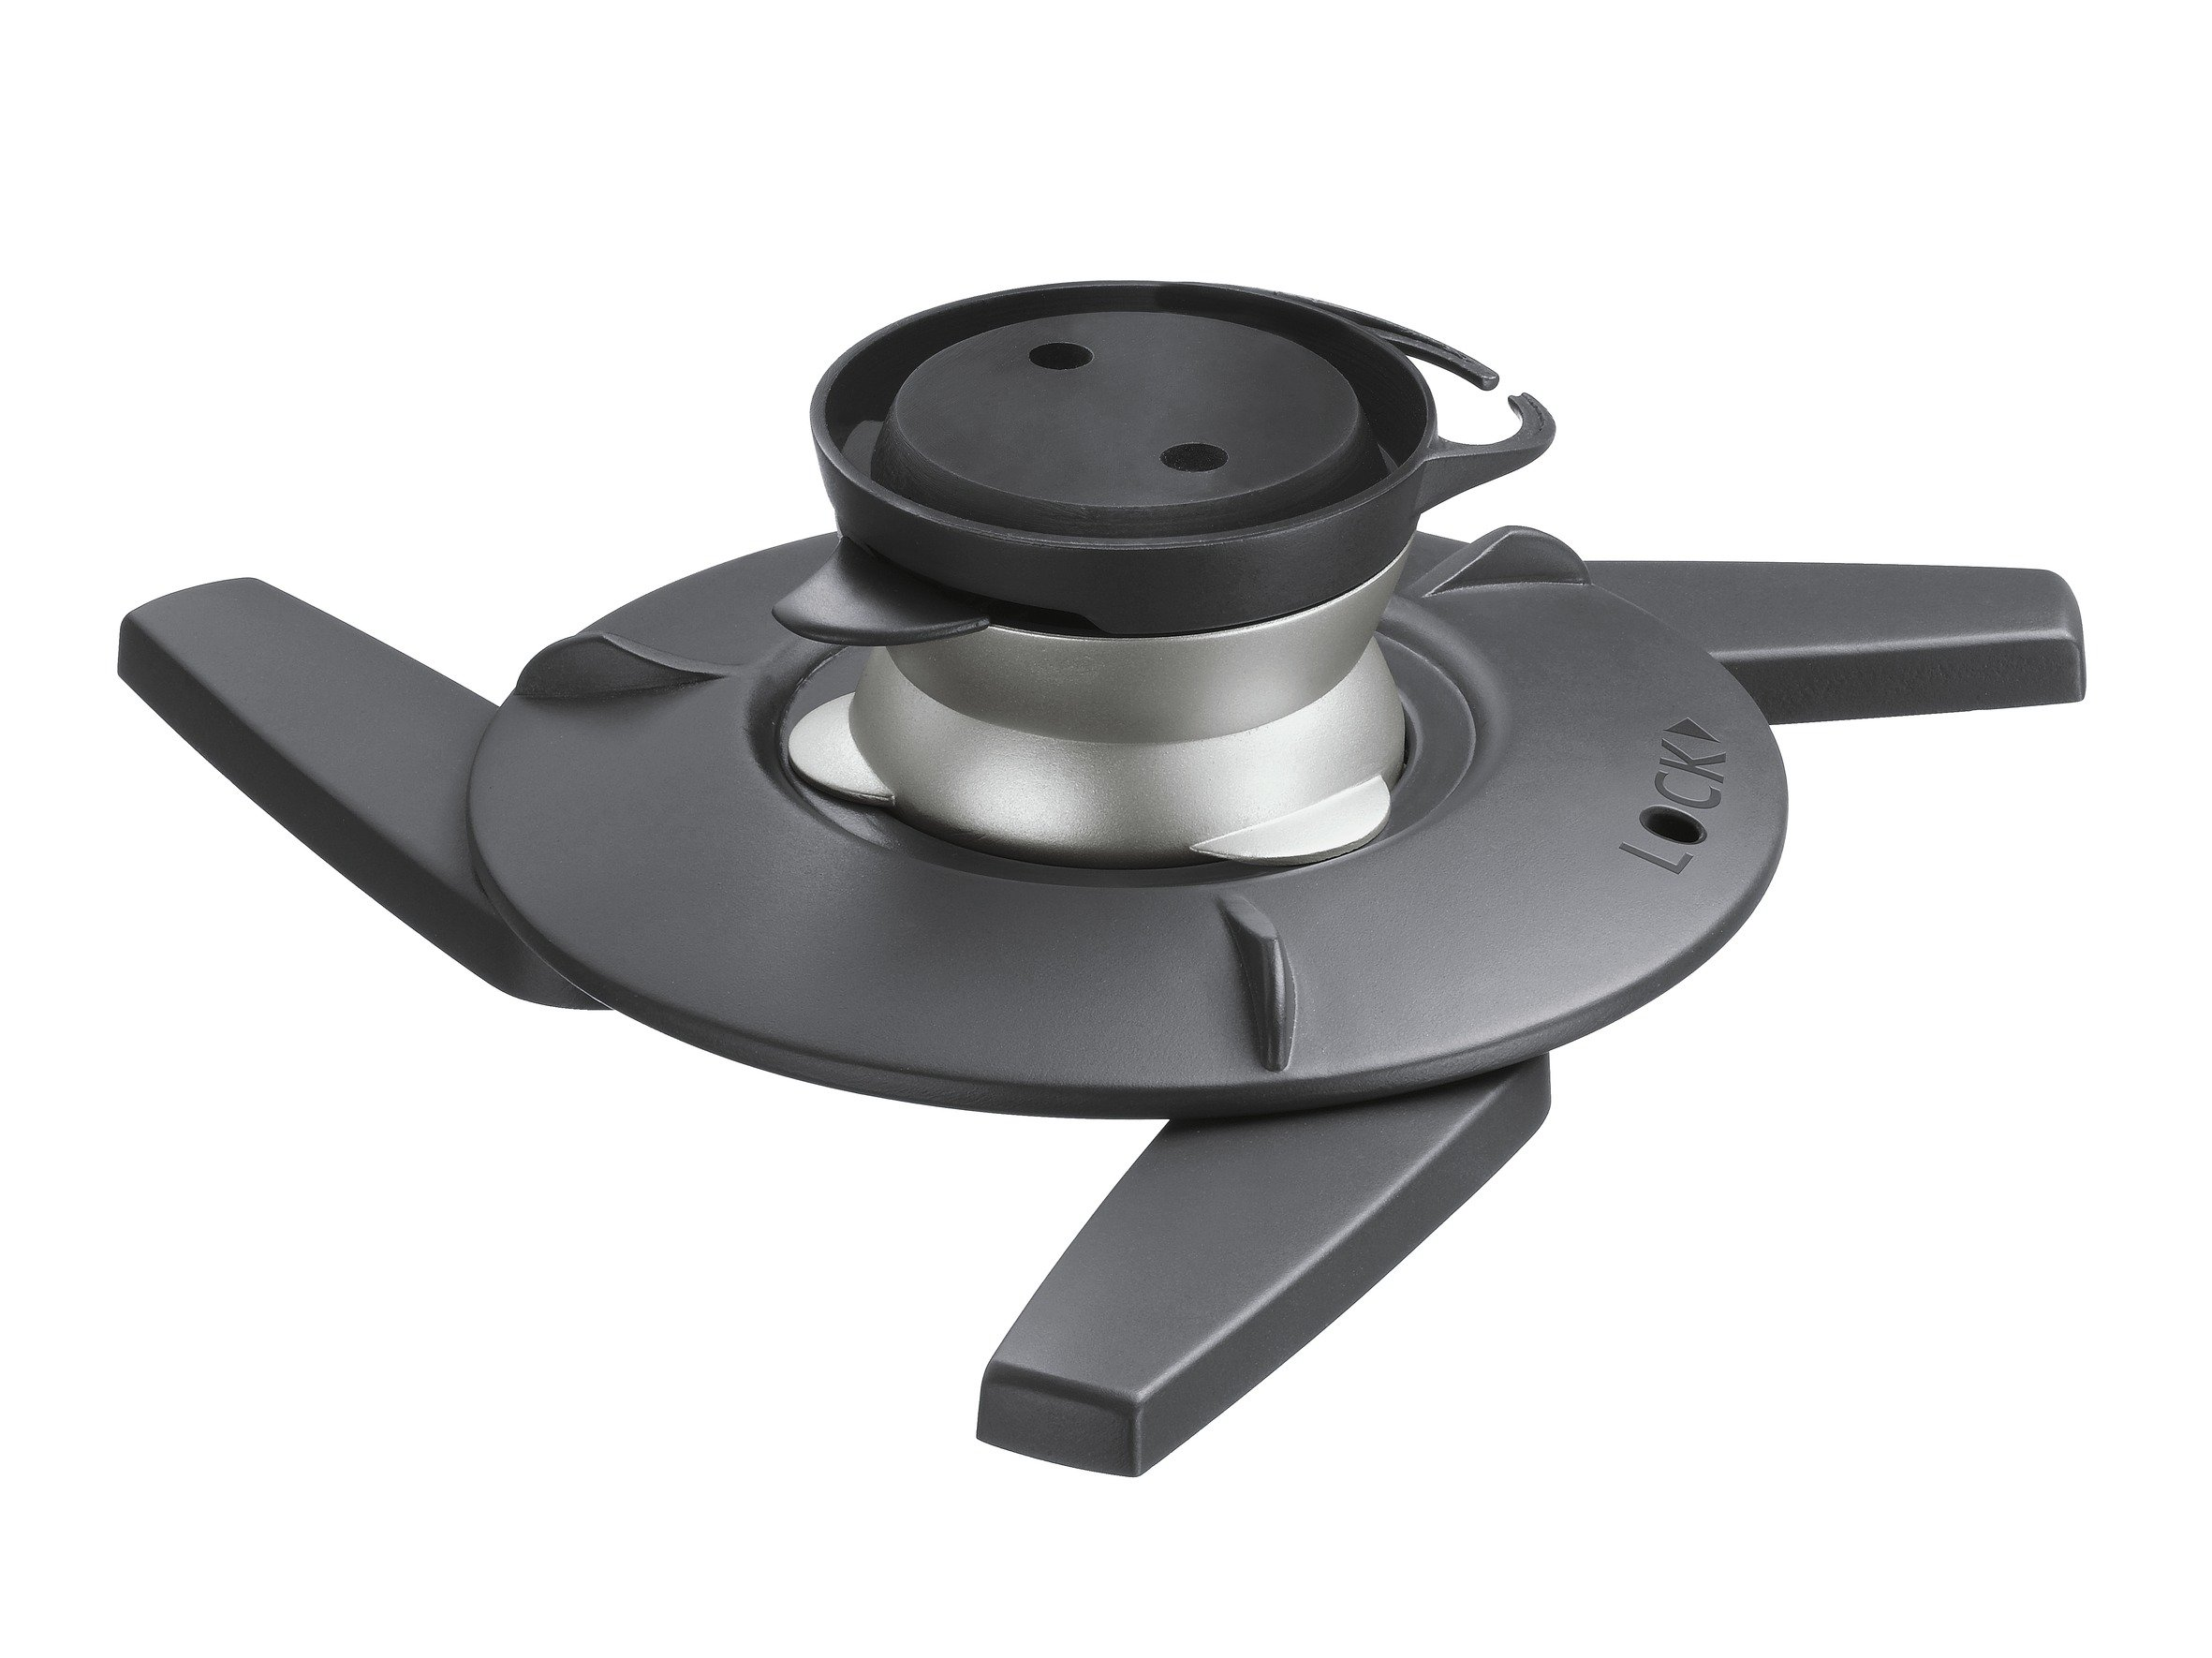 Vogel's Projector Mount for Wall or Ceiling, Universal Fit, Swivel and Tilt, Max 22 lbs - EPC 6545 Ceiling Mount, Black/Silver